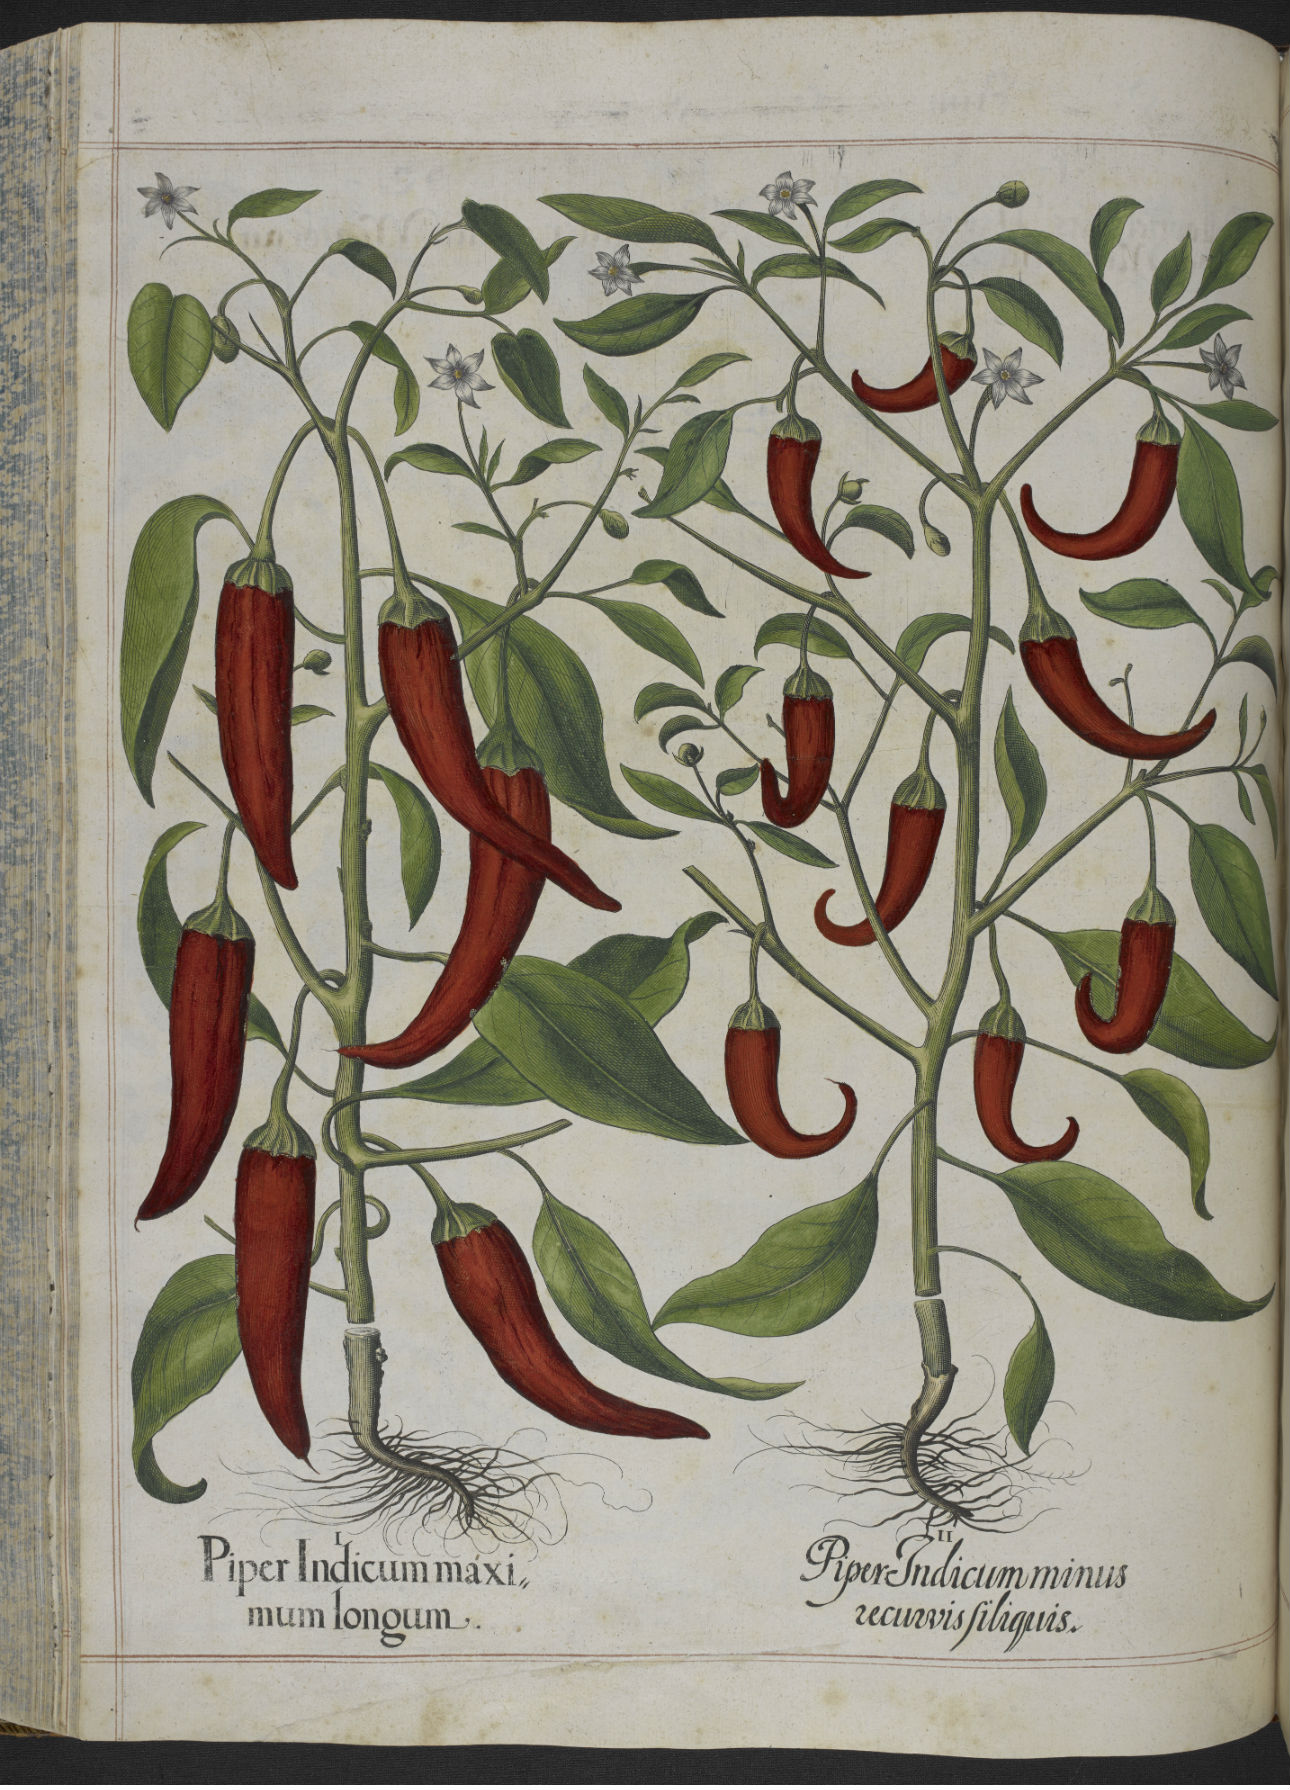 Hortus Eystettensis: red pepper plants